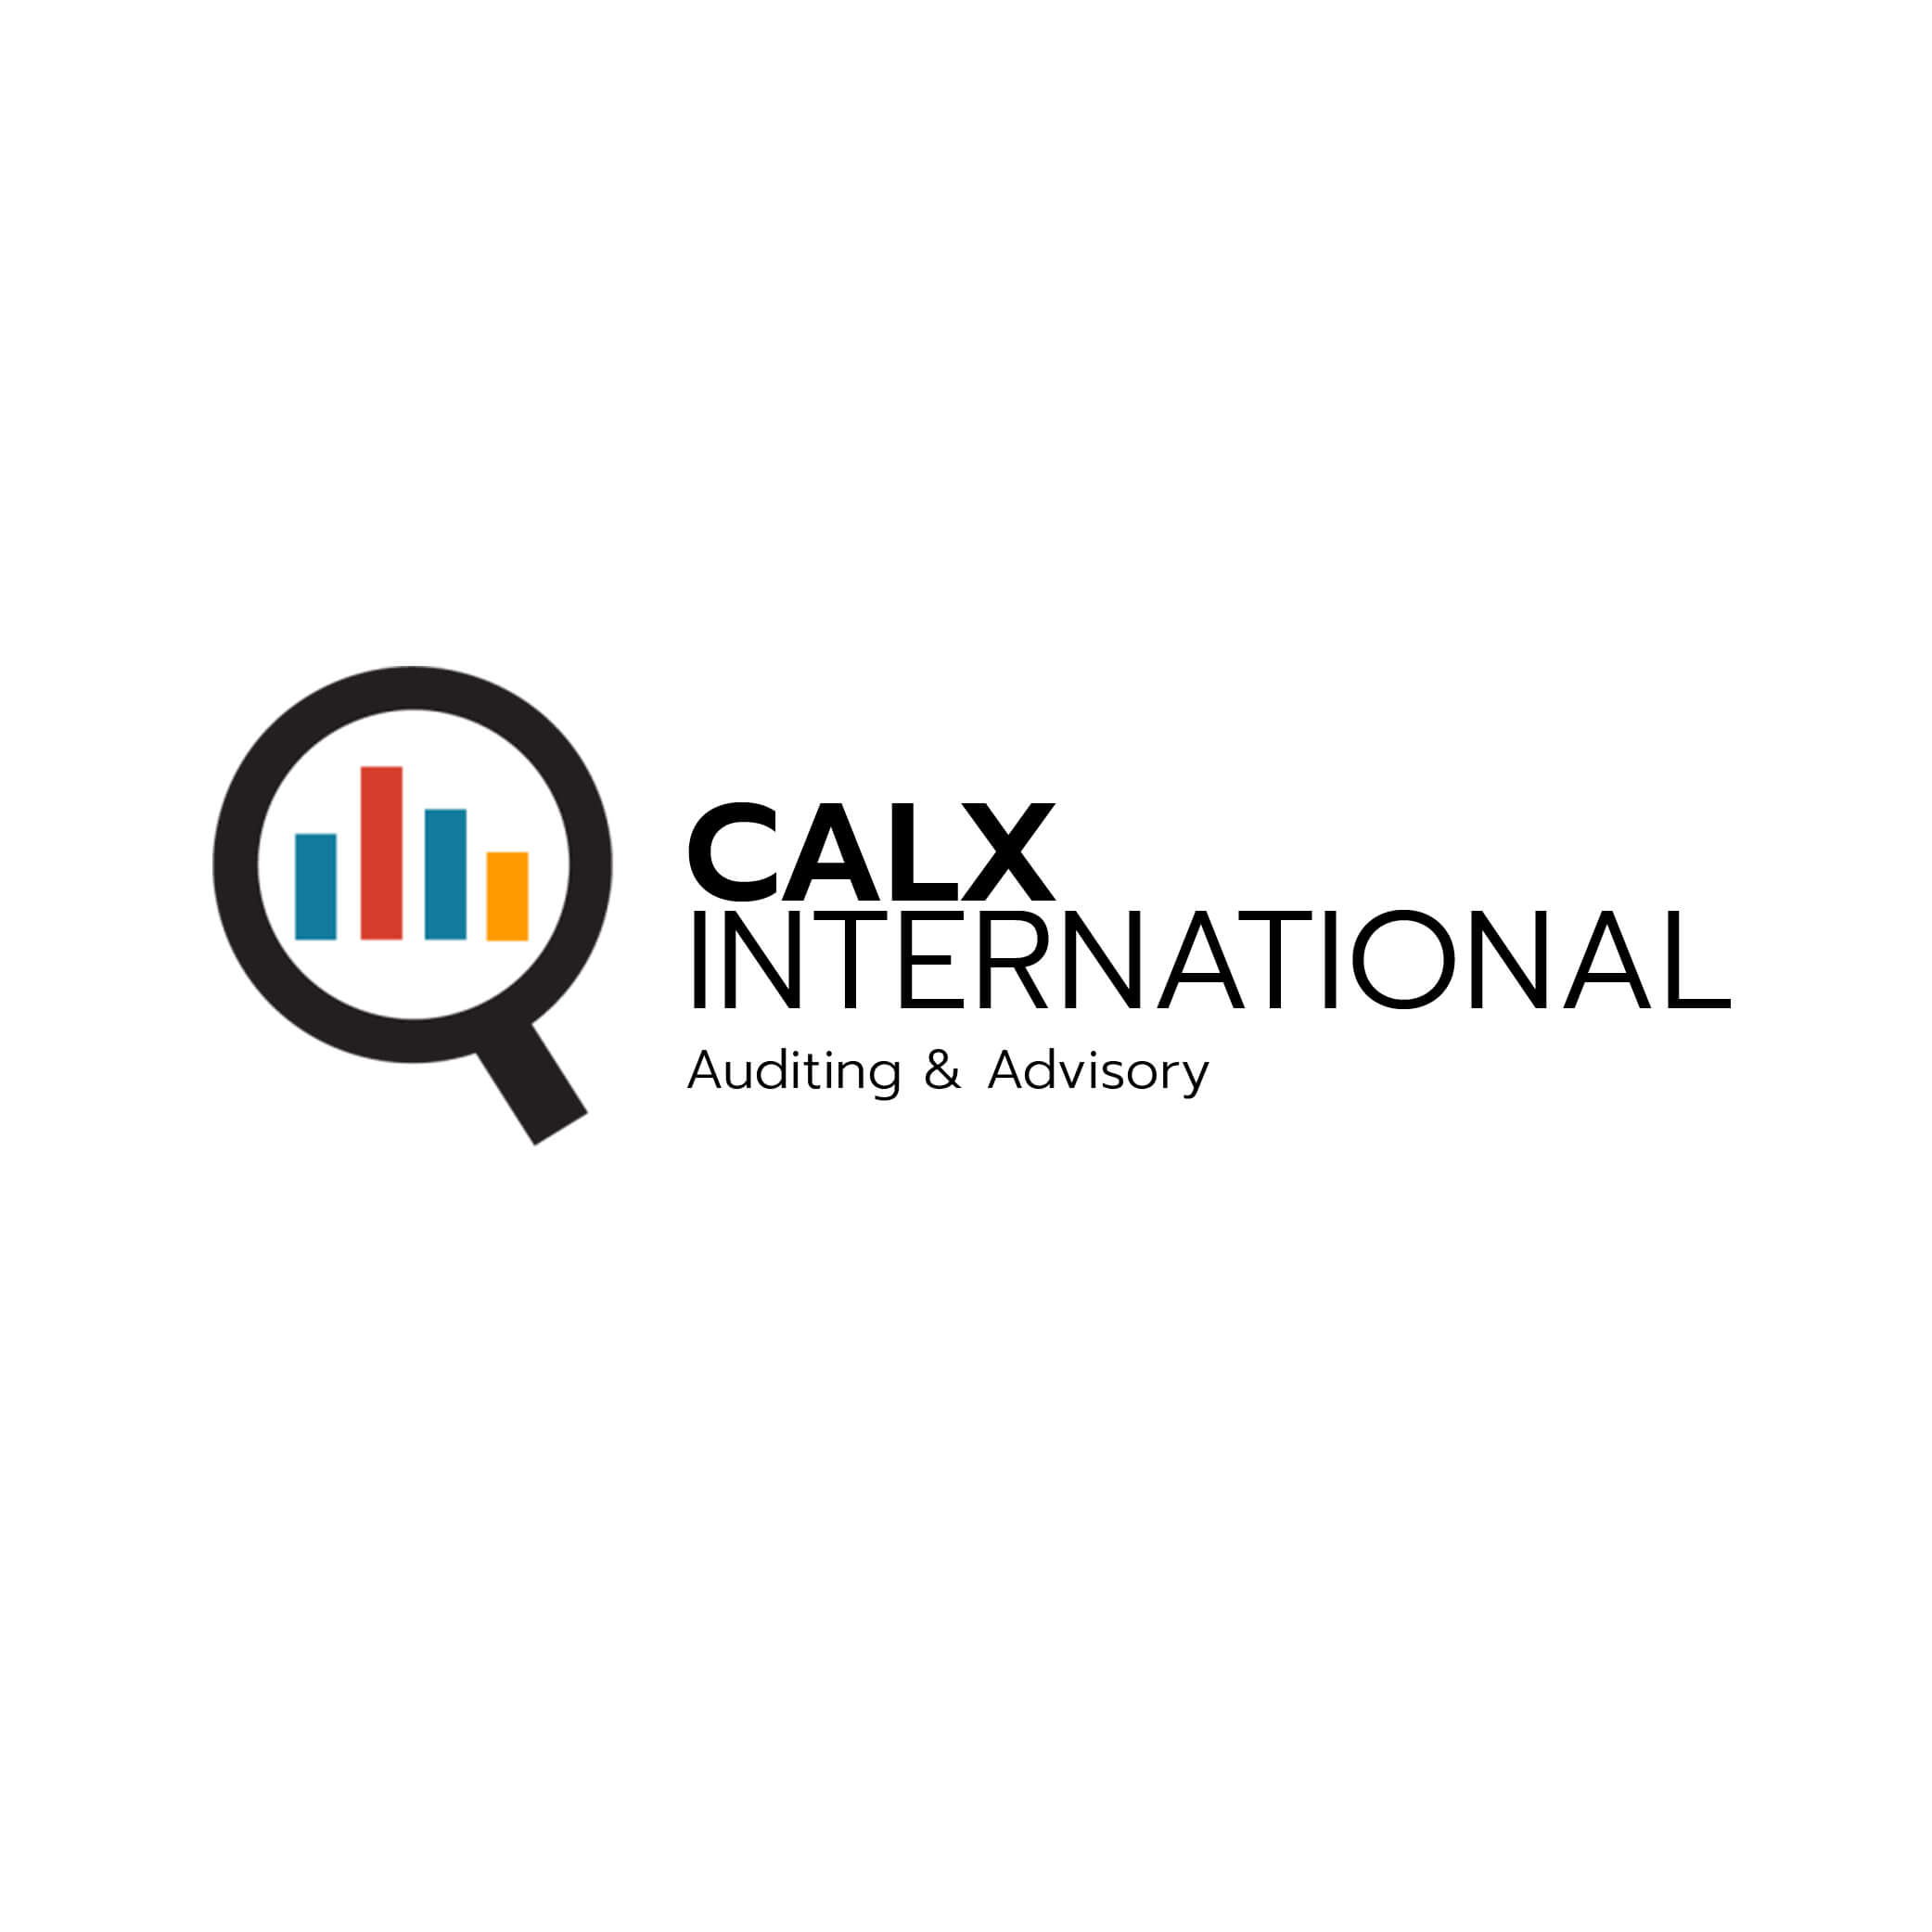 CALX International Auditing and Advisorys